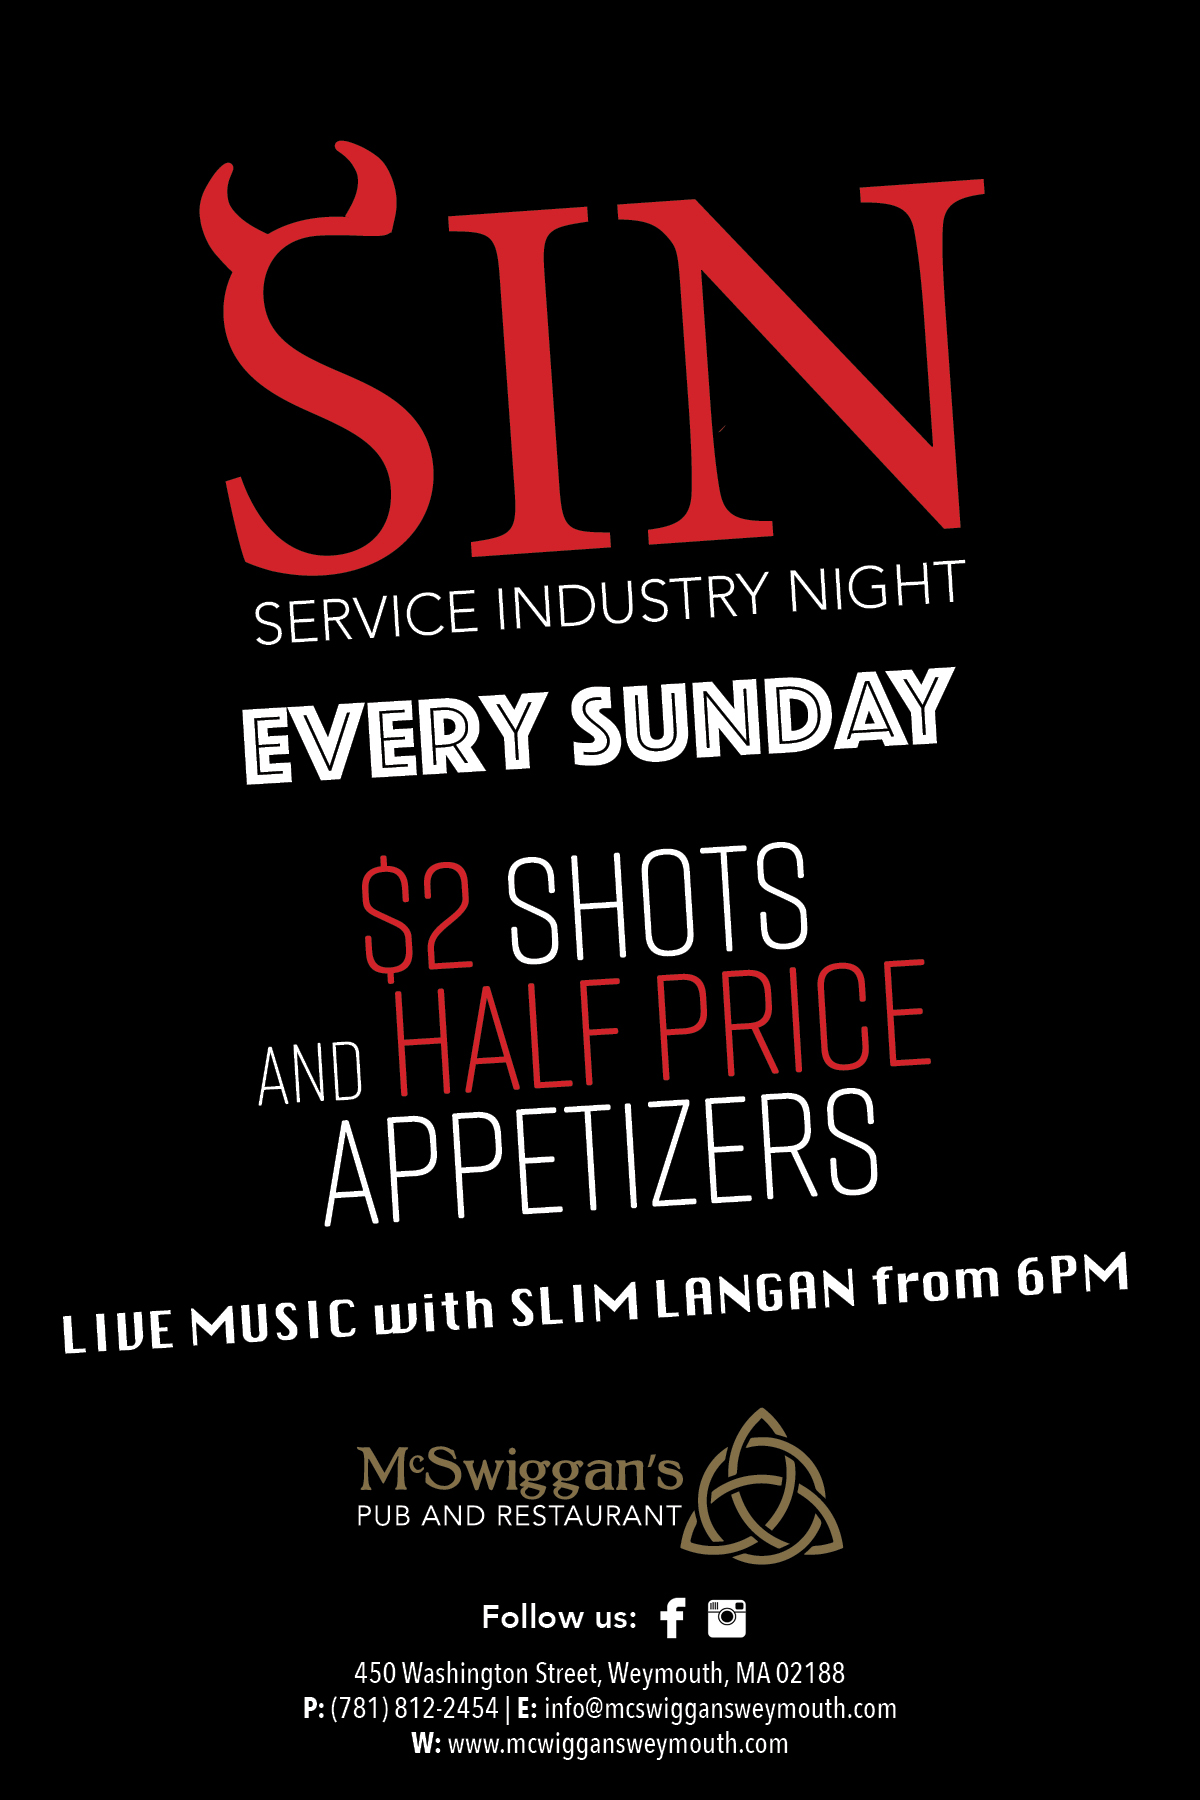 Sin Service Industry Night | Every Sinday | $2 shots and half price Appetizers | Live music with slim Langan from 6pm